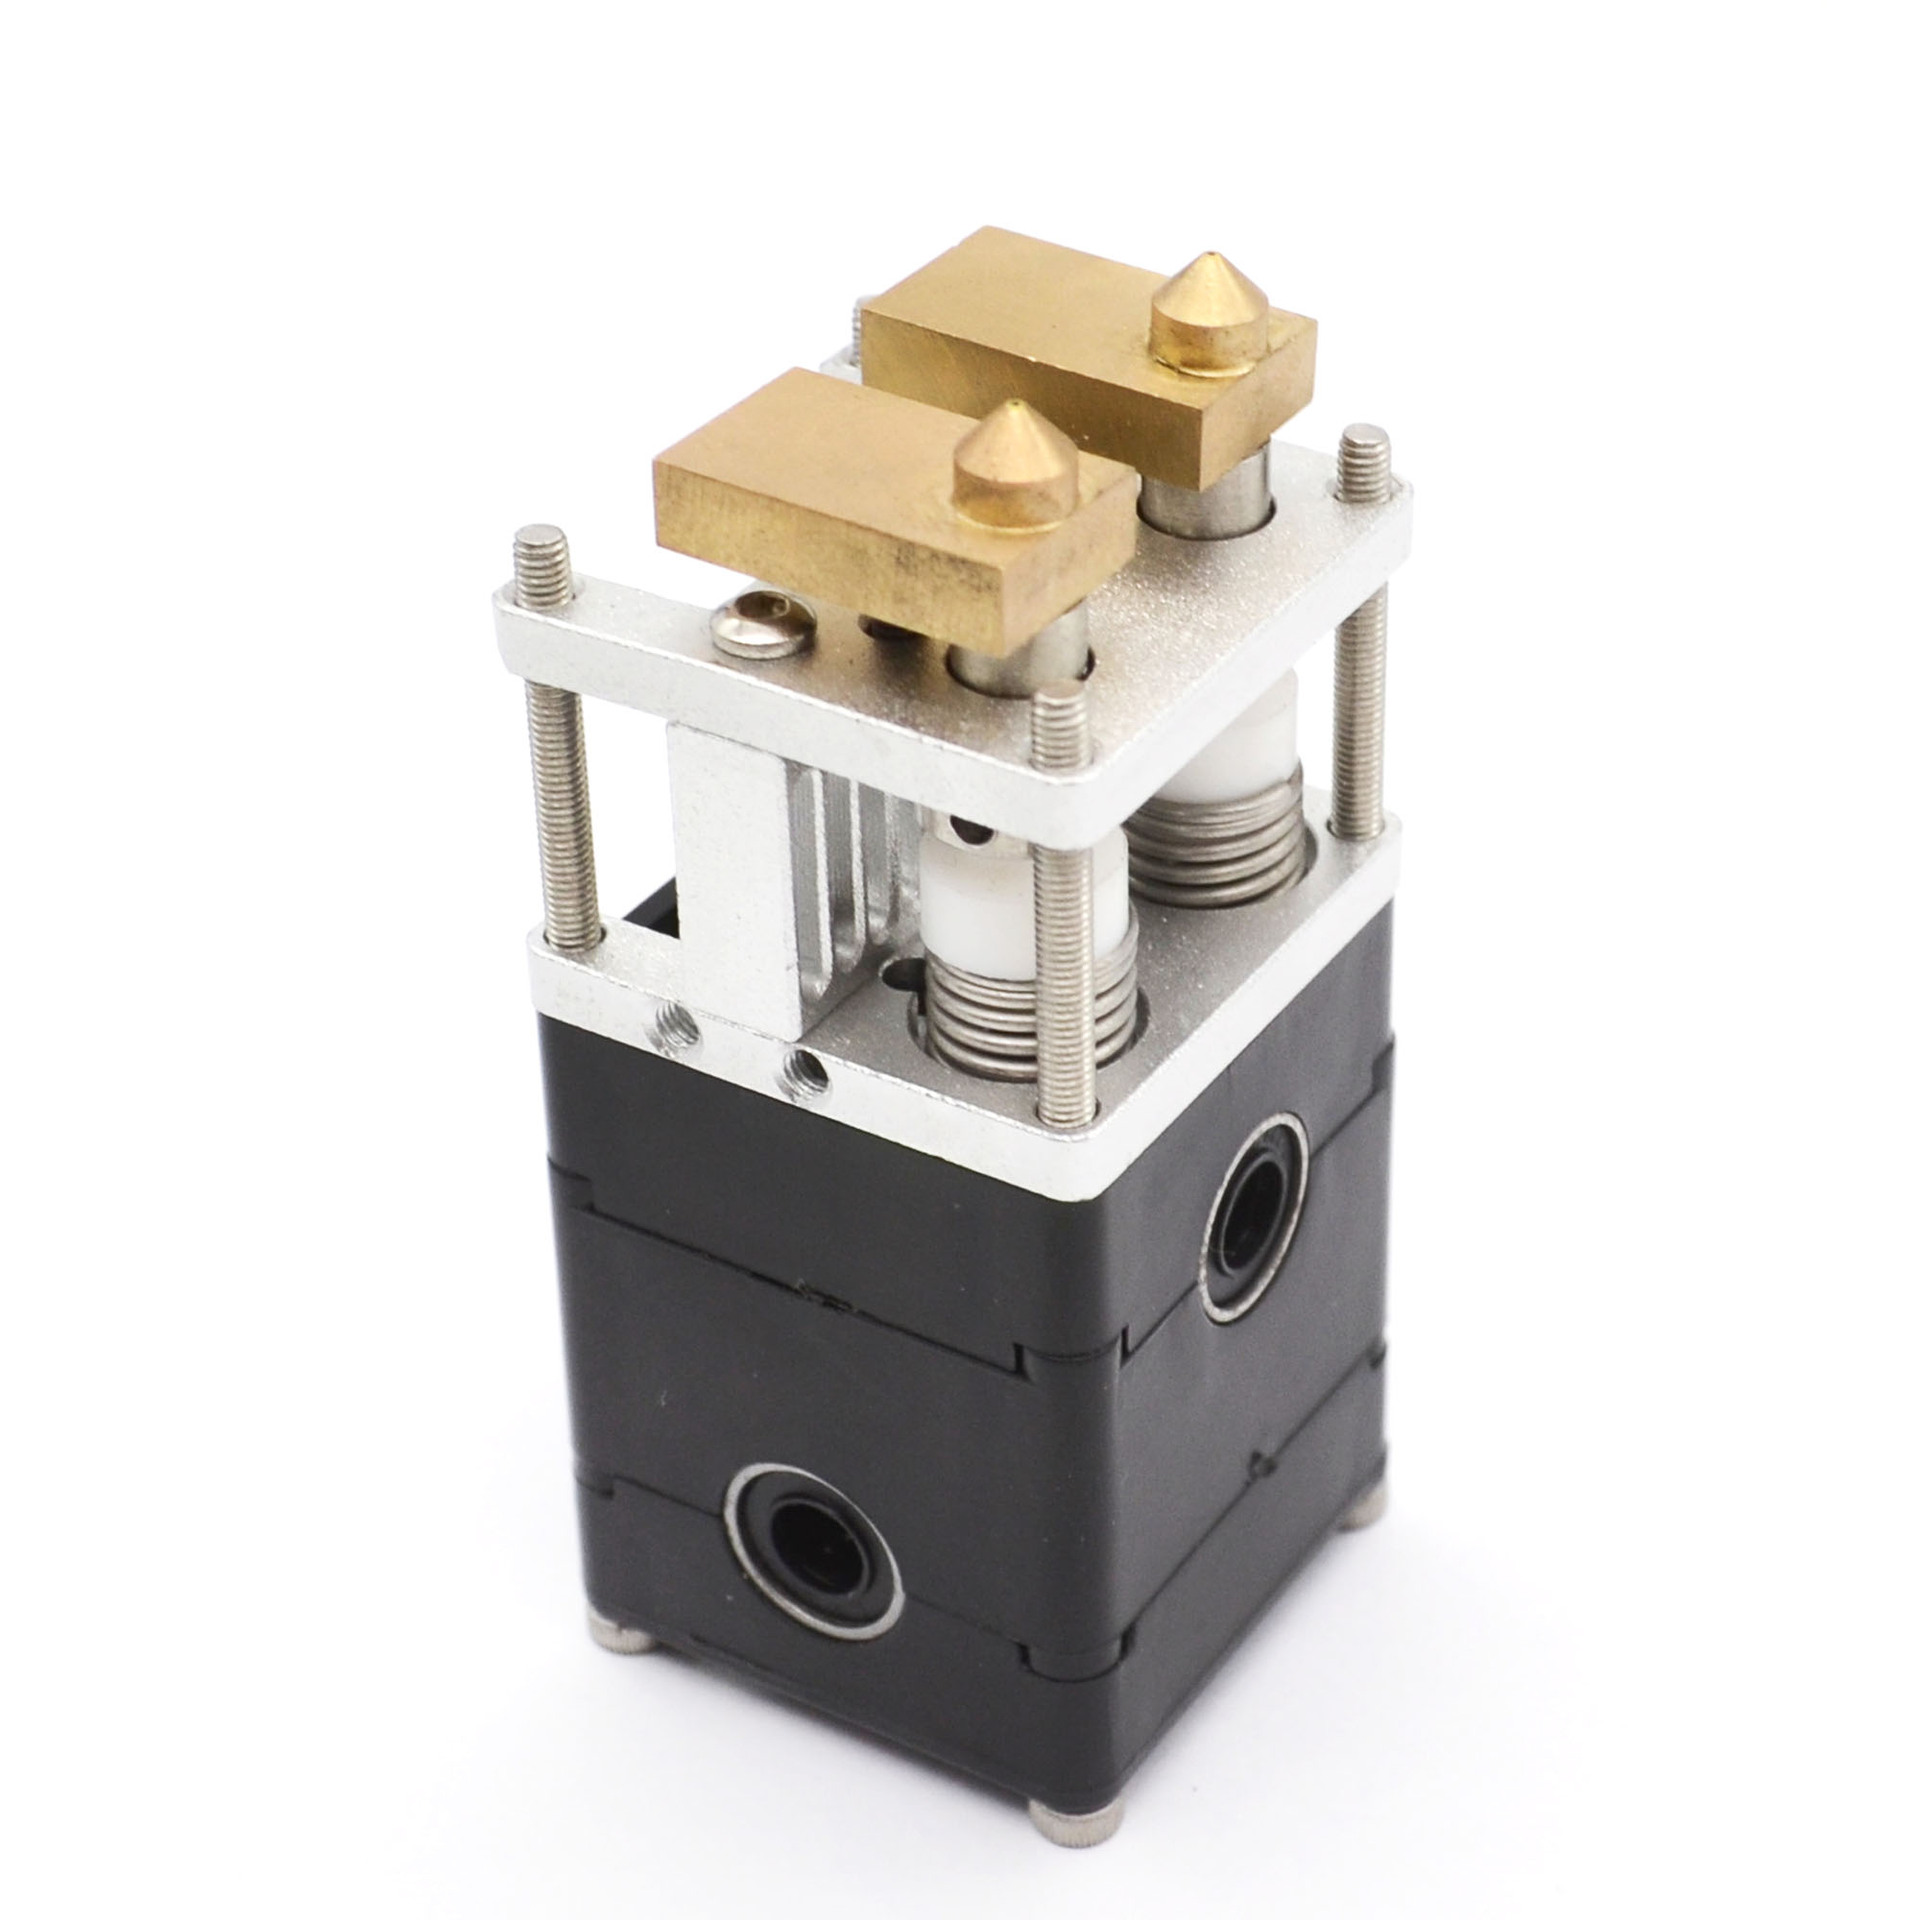 3D Printer parts Ulimaker 2 UM2 Dual print head Extruder full kit with Coupling 0.4mm Nozzle for 1.75/3.0mm filament 3d printers parts mk8 extruder head j head hotend 0 4mm nozzle kit 1 75mm filament extrusion mk8 extruder kit